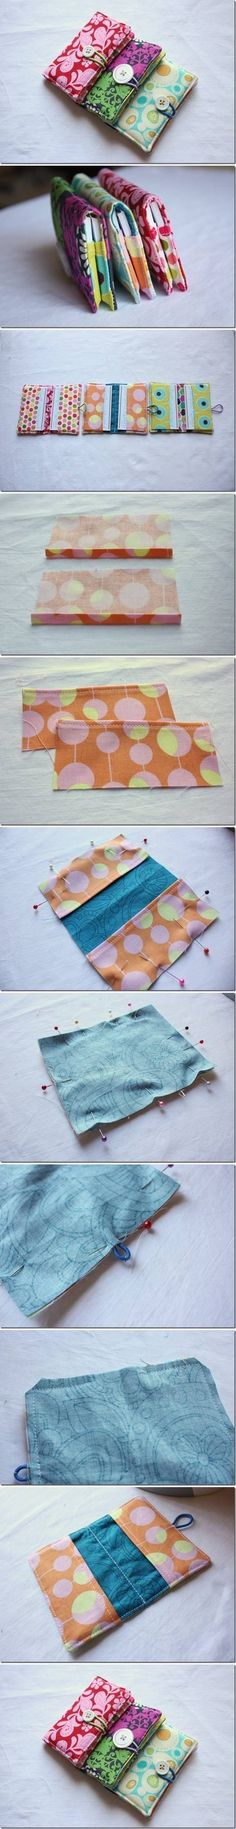 DIY Sew Business Card Holder | I often see this and forget to pin it so today's the day! could be nice little gifts or stocking stuffers too!